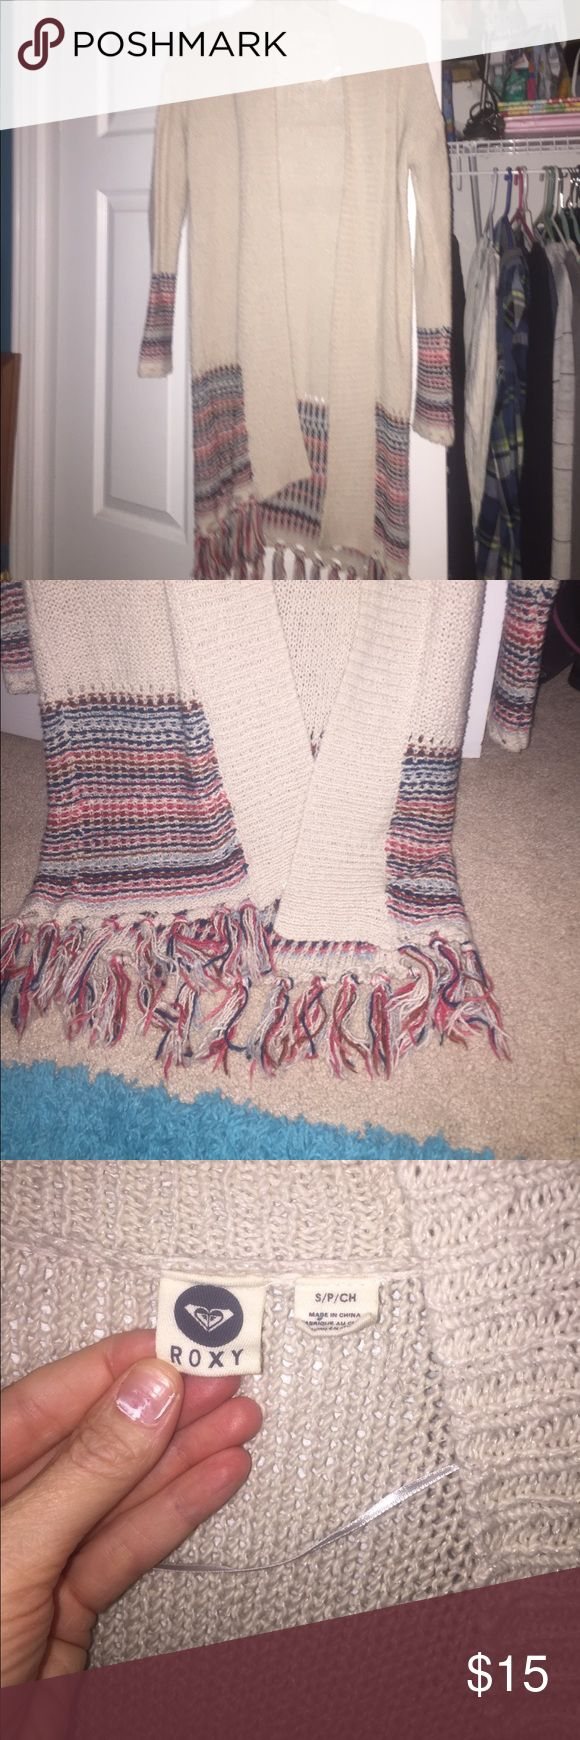 Roxy cardigan NWOT Roxy cardigan fringe at bottom tan with multicolor. Super cute just downsizing 🌸size small but I'm a med and it fit Roxy Sweaters Cardigans